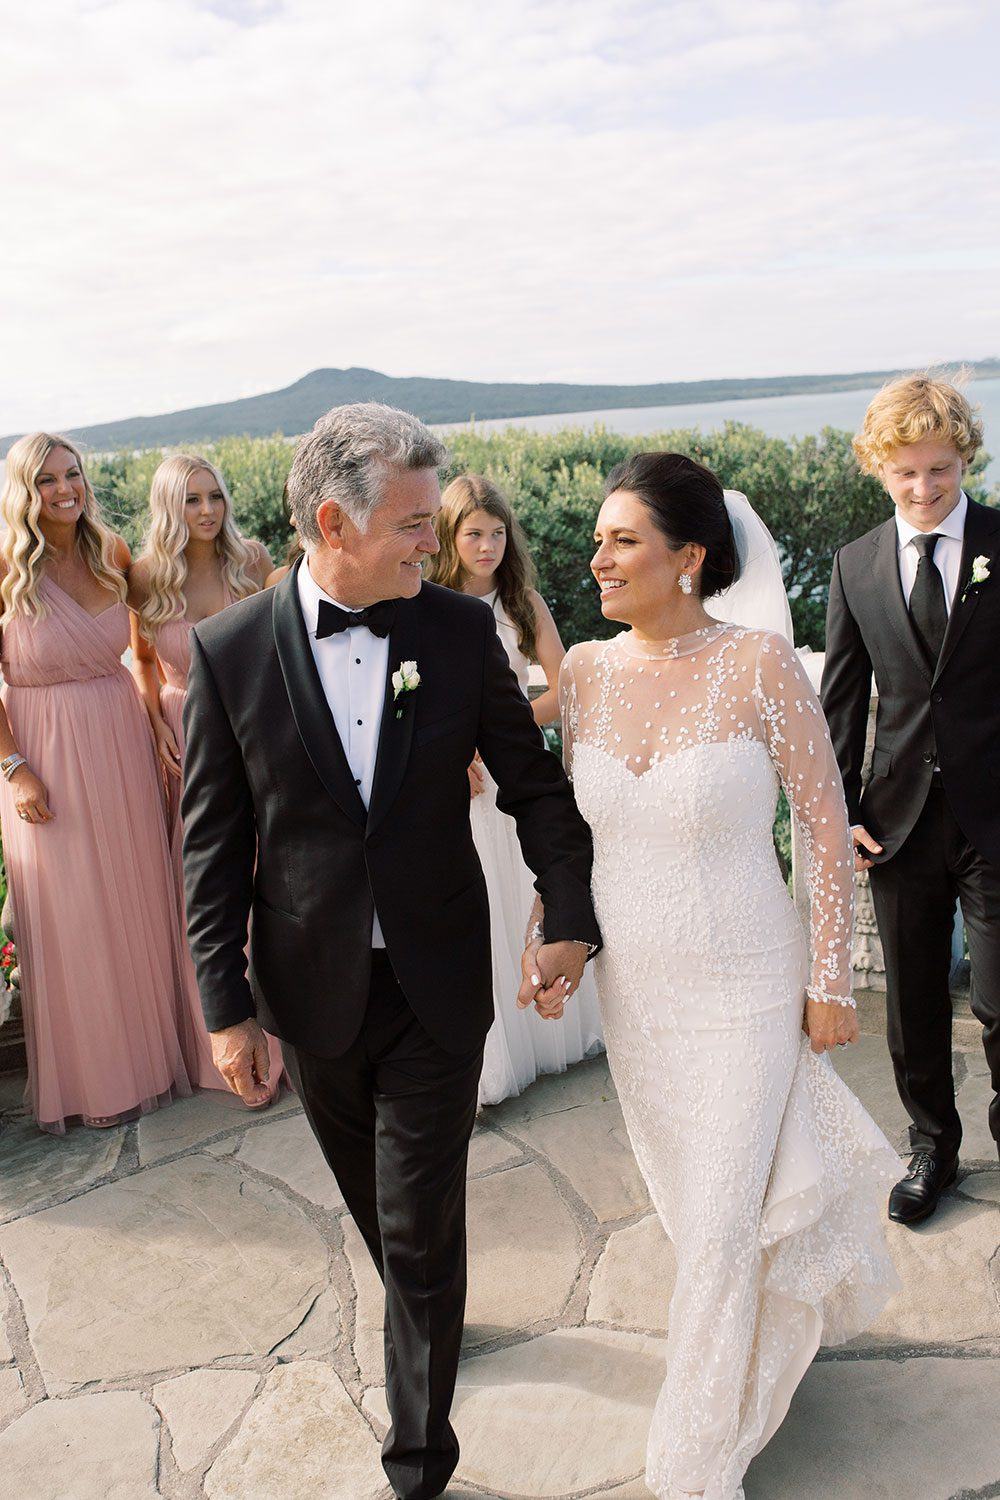 Bride wearing bespoke gown by Auckland wedding dress designer Vinka Design, with a high neckline and delicate spotted embroidery - with groom holding hands